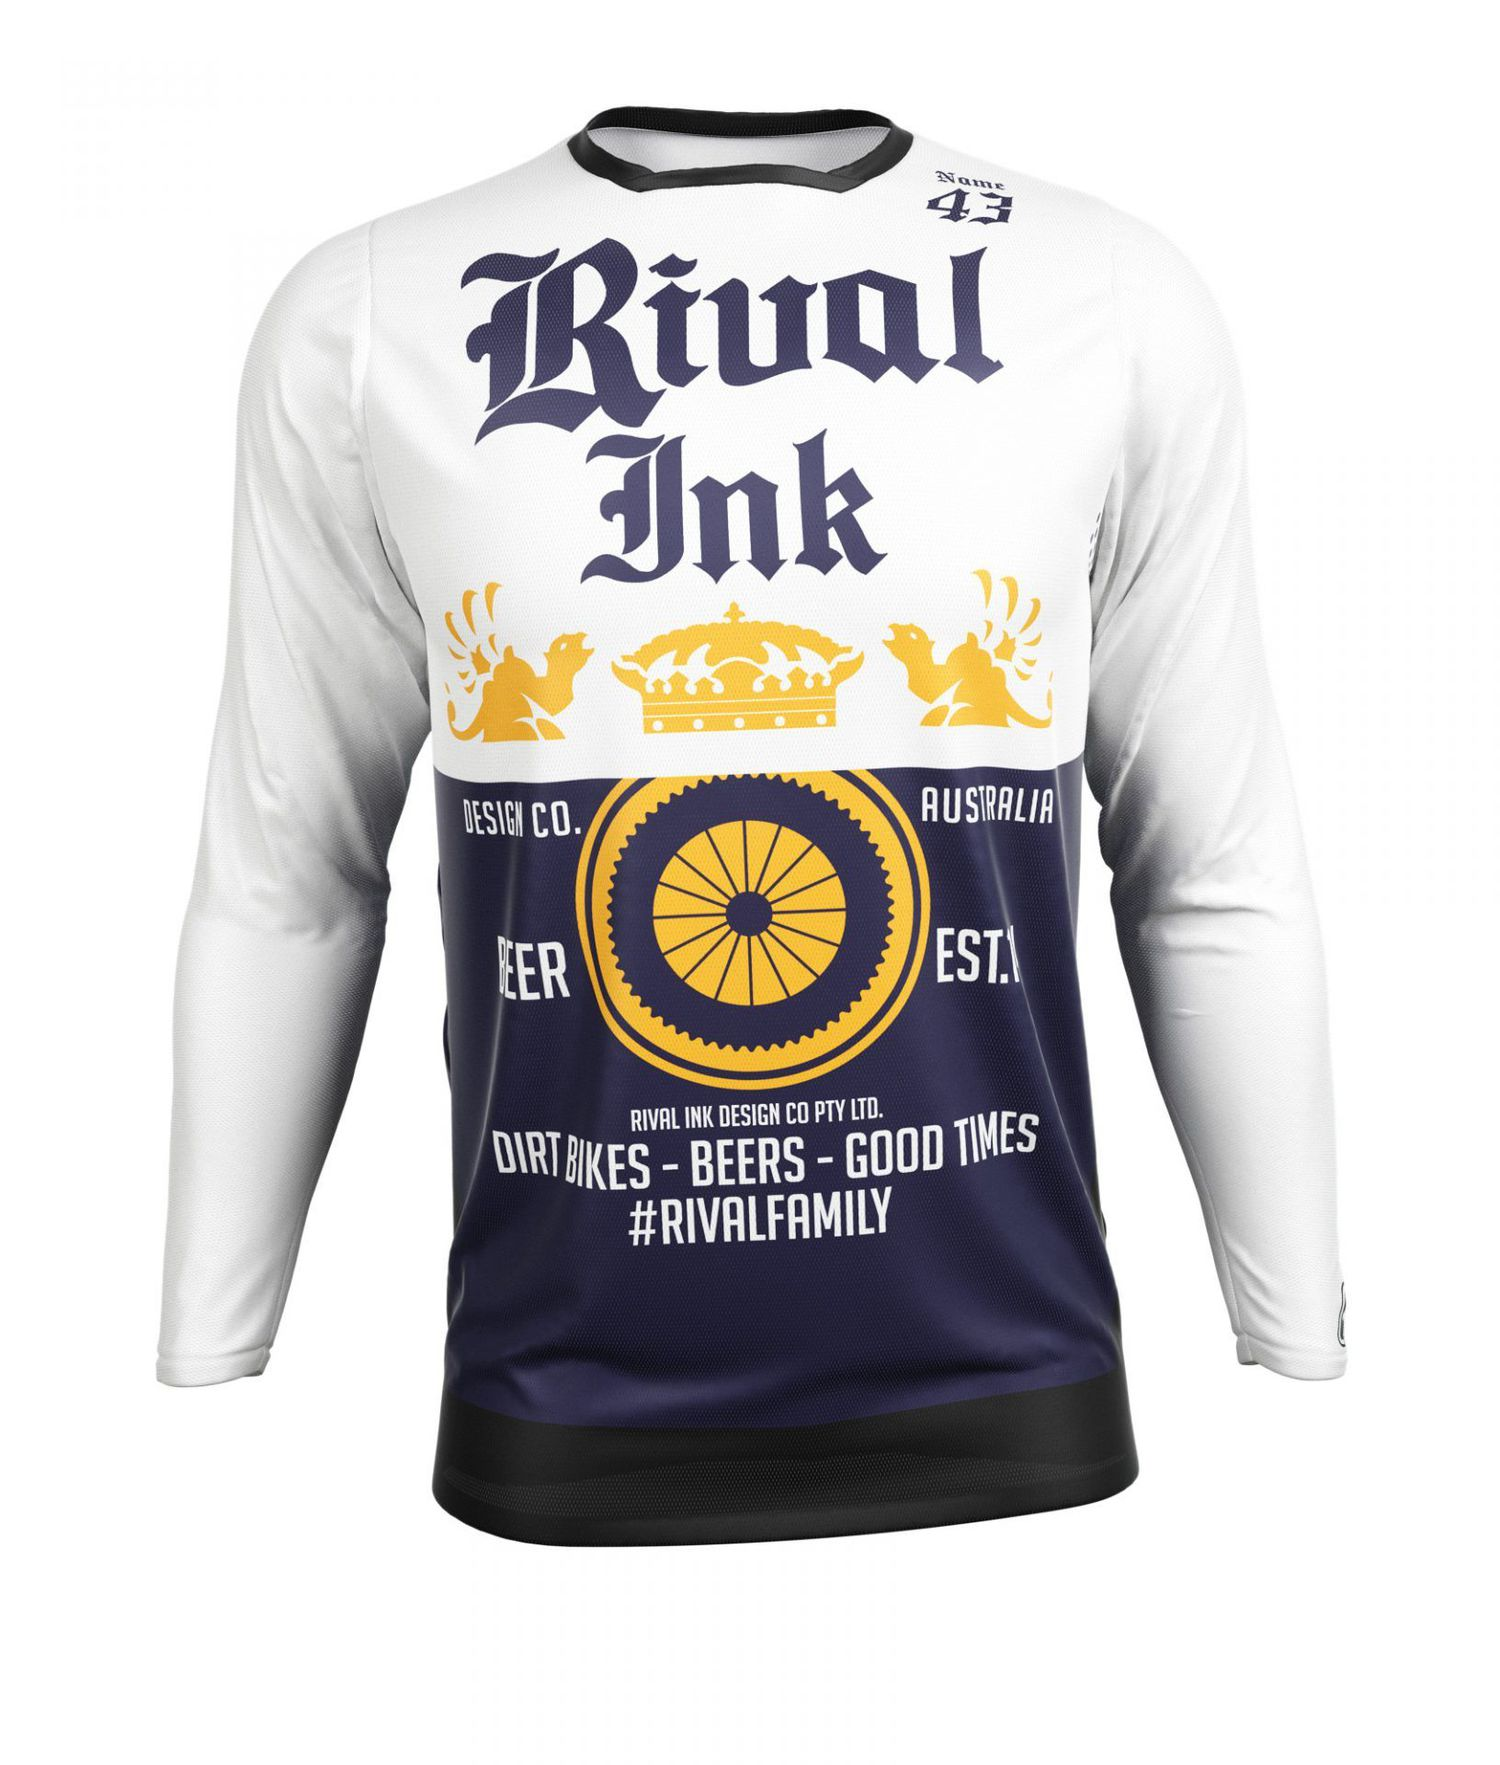 PREMIUM FIT CUSTOM SUBLIMATED JERSEY - BEER ME